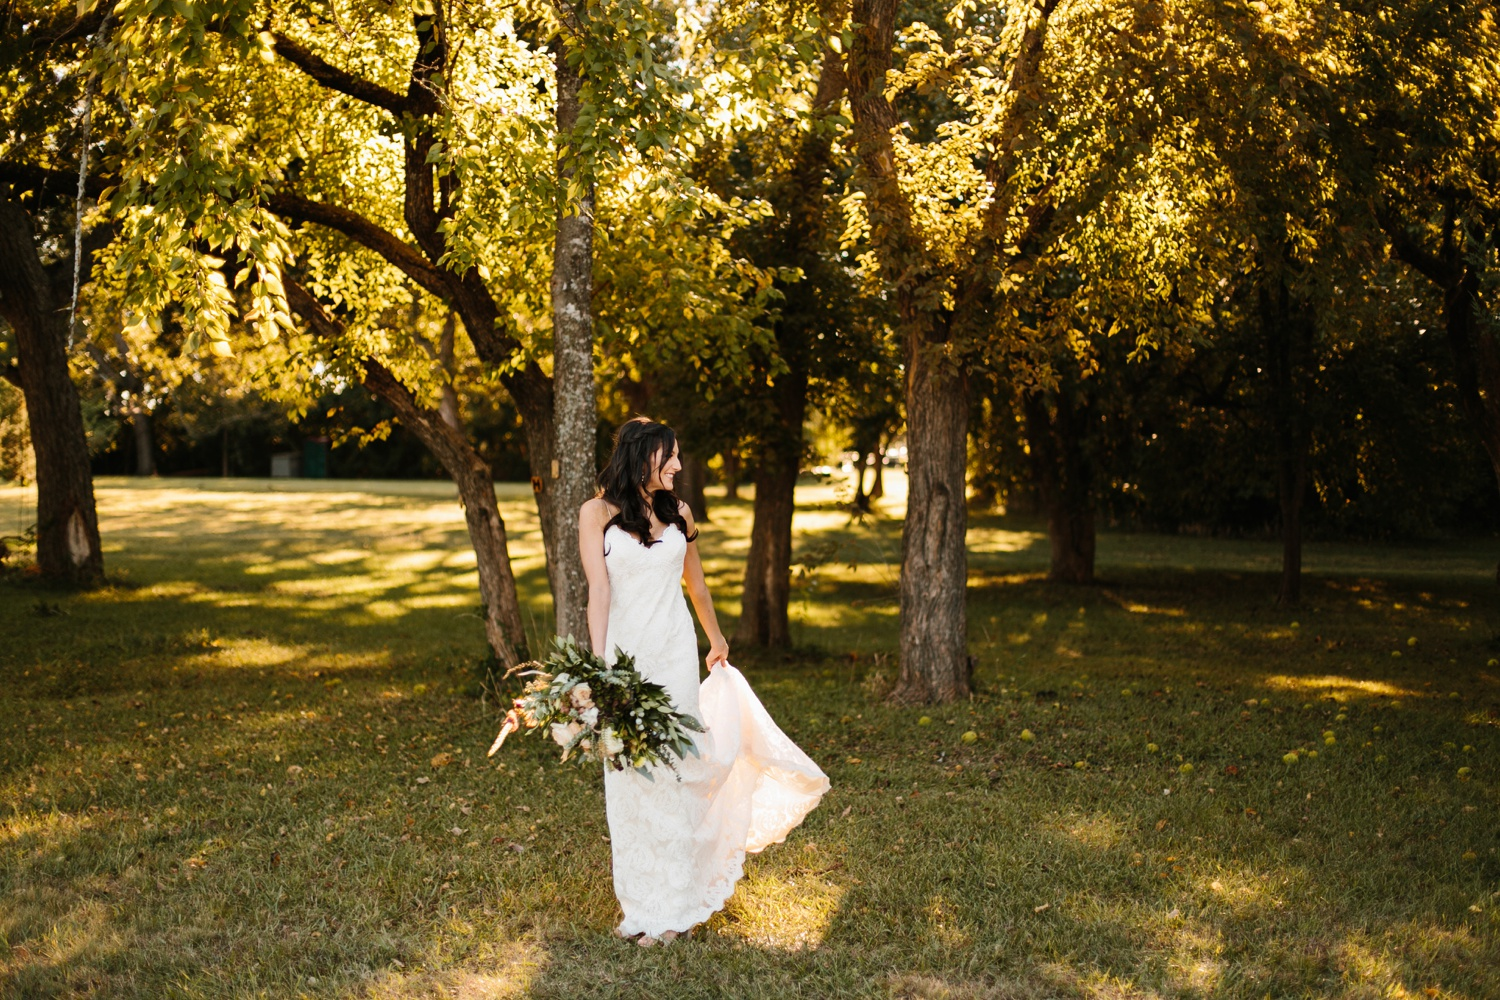 Erica + Henry | a bohemian inspired wedding at Chandlers Gardens in Salina, TX by North Texas Wedding Photographer Rachel Meagan Photography 060